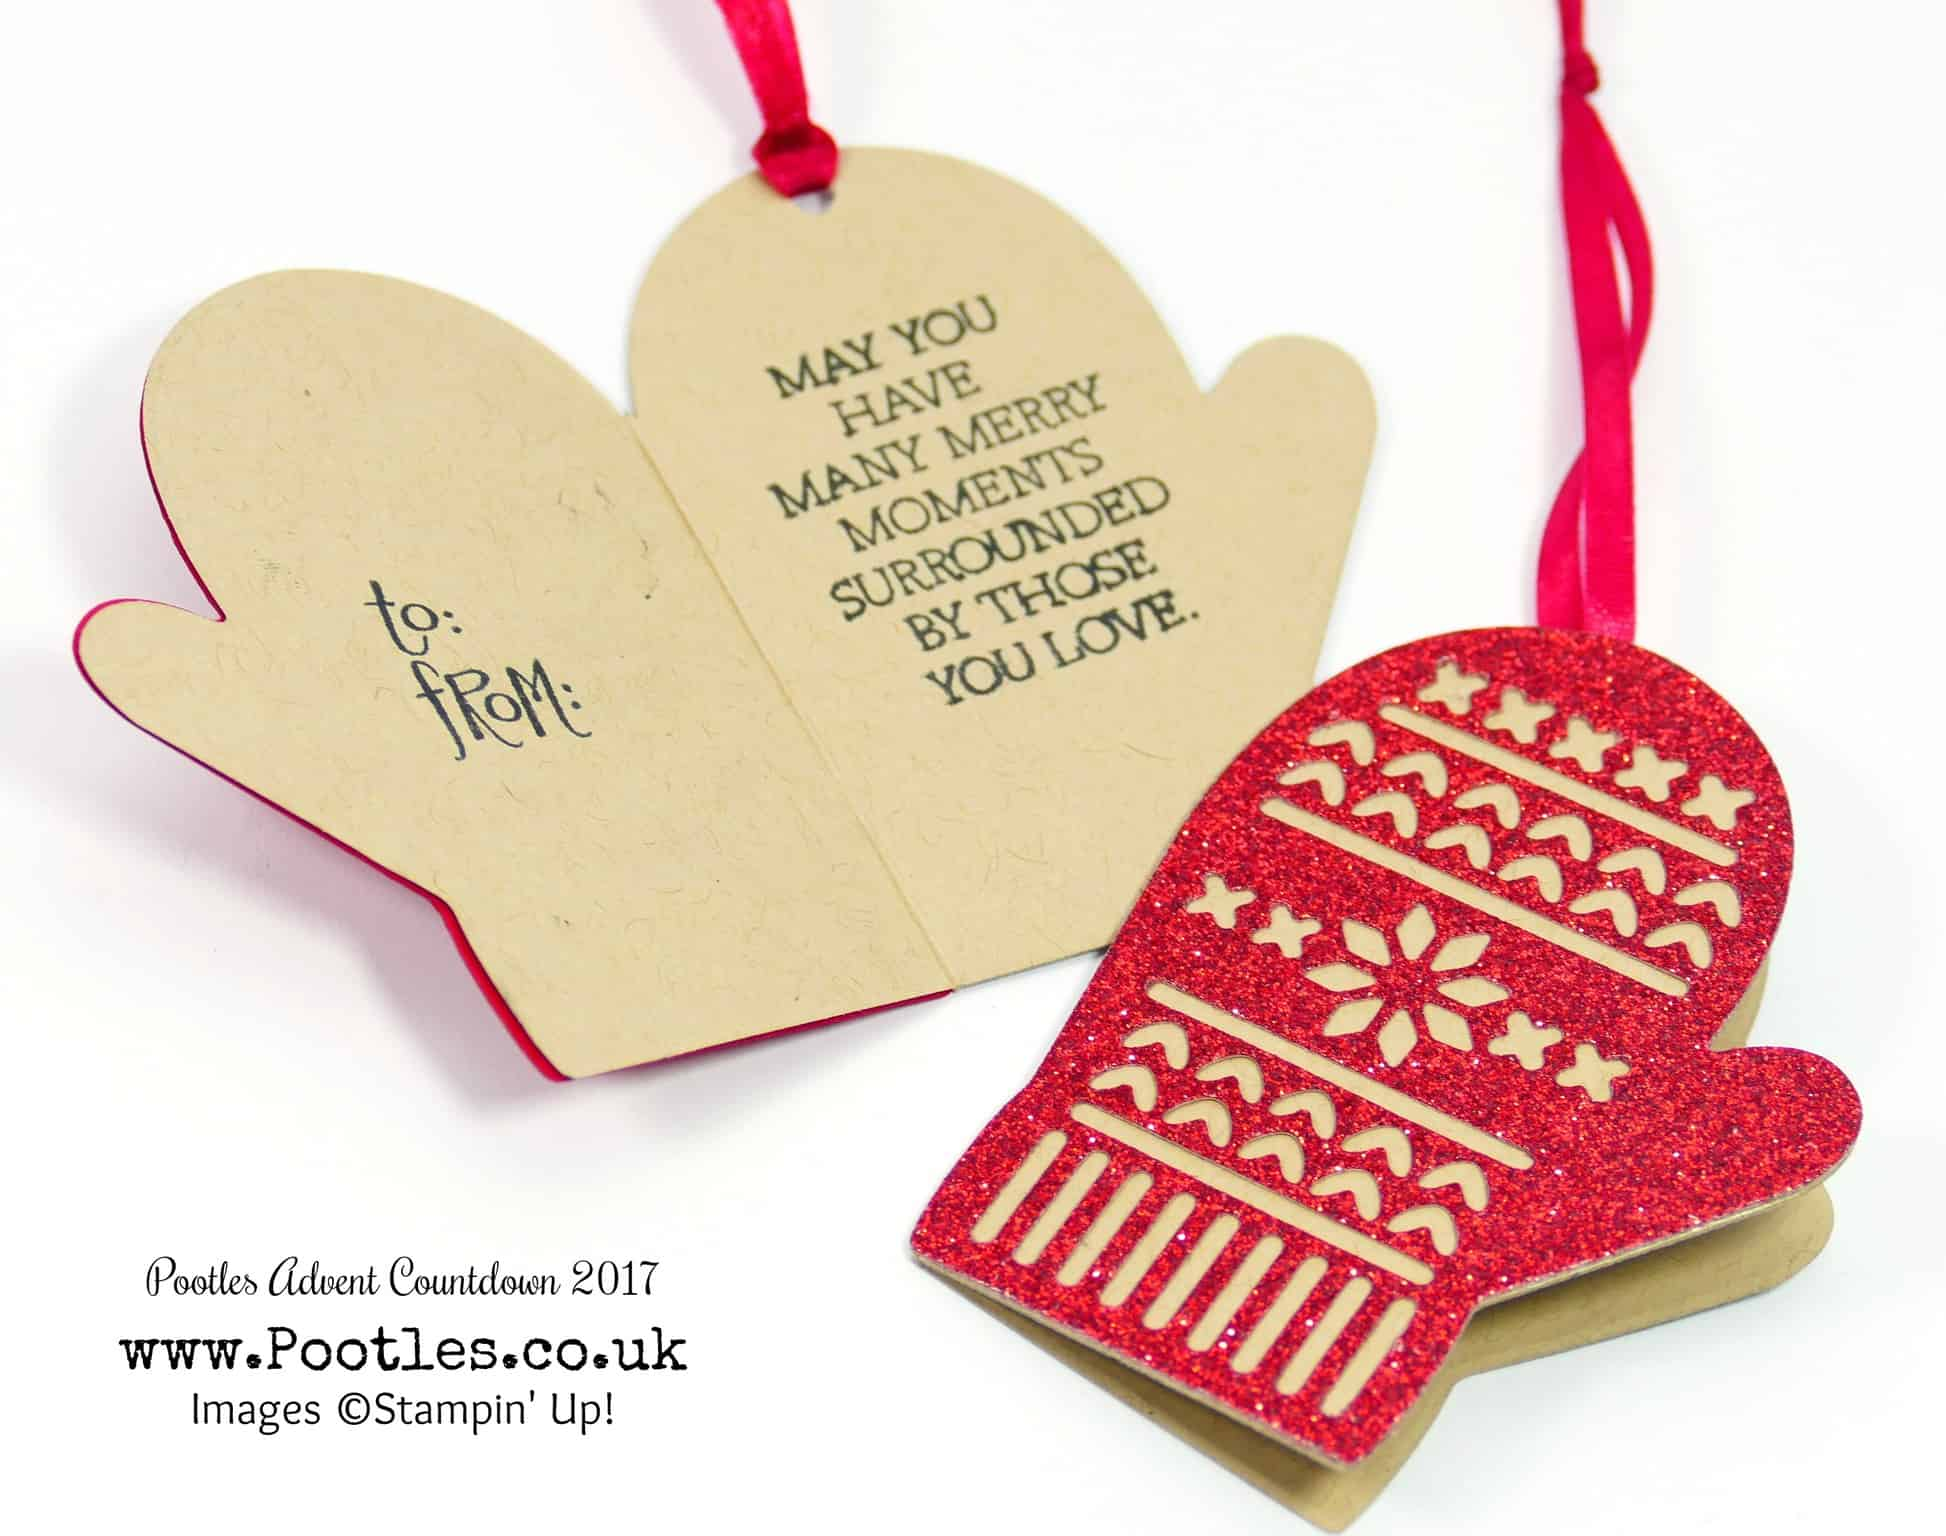 Pootles Advent Countdown 2017 #10 Smitten Mitten Hinged Glimmer Gift Tags